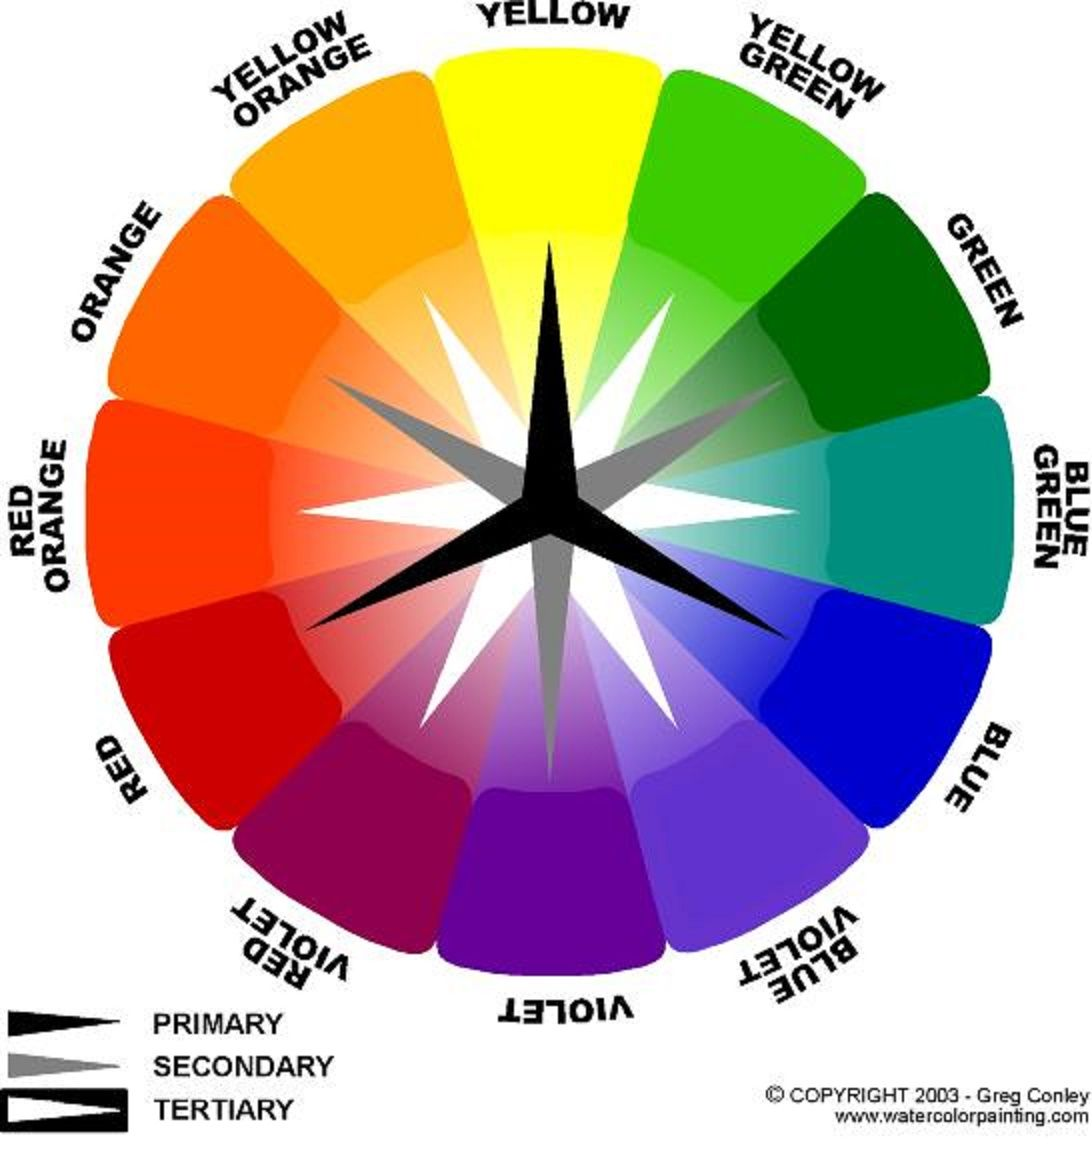 The Color Wheel The 12 Part Color Wheel Is A Representation Of The